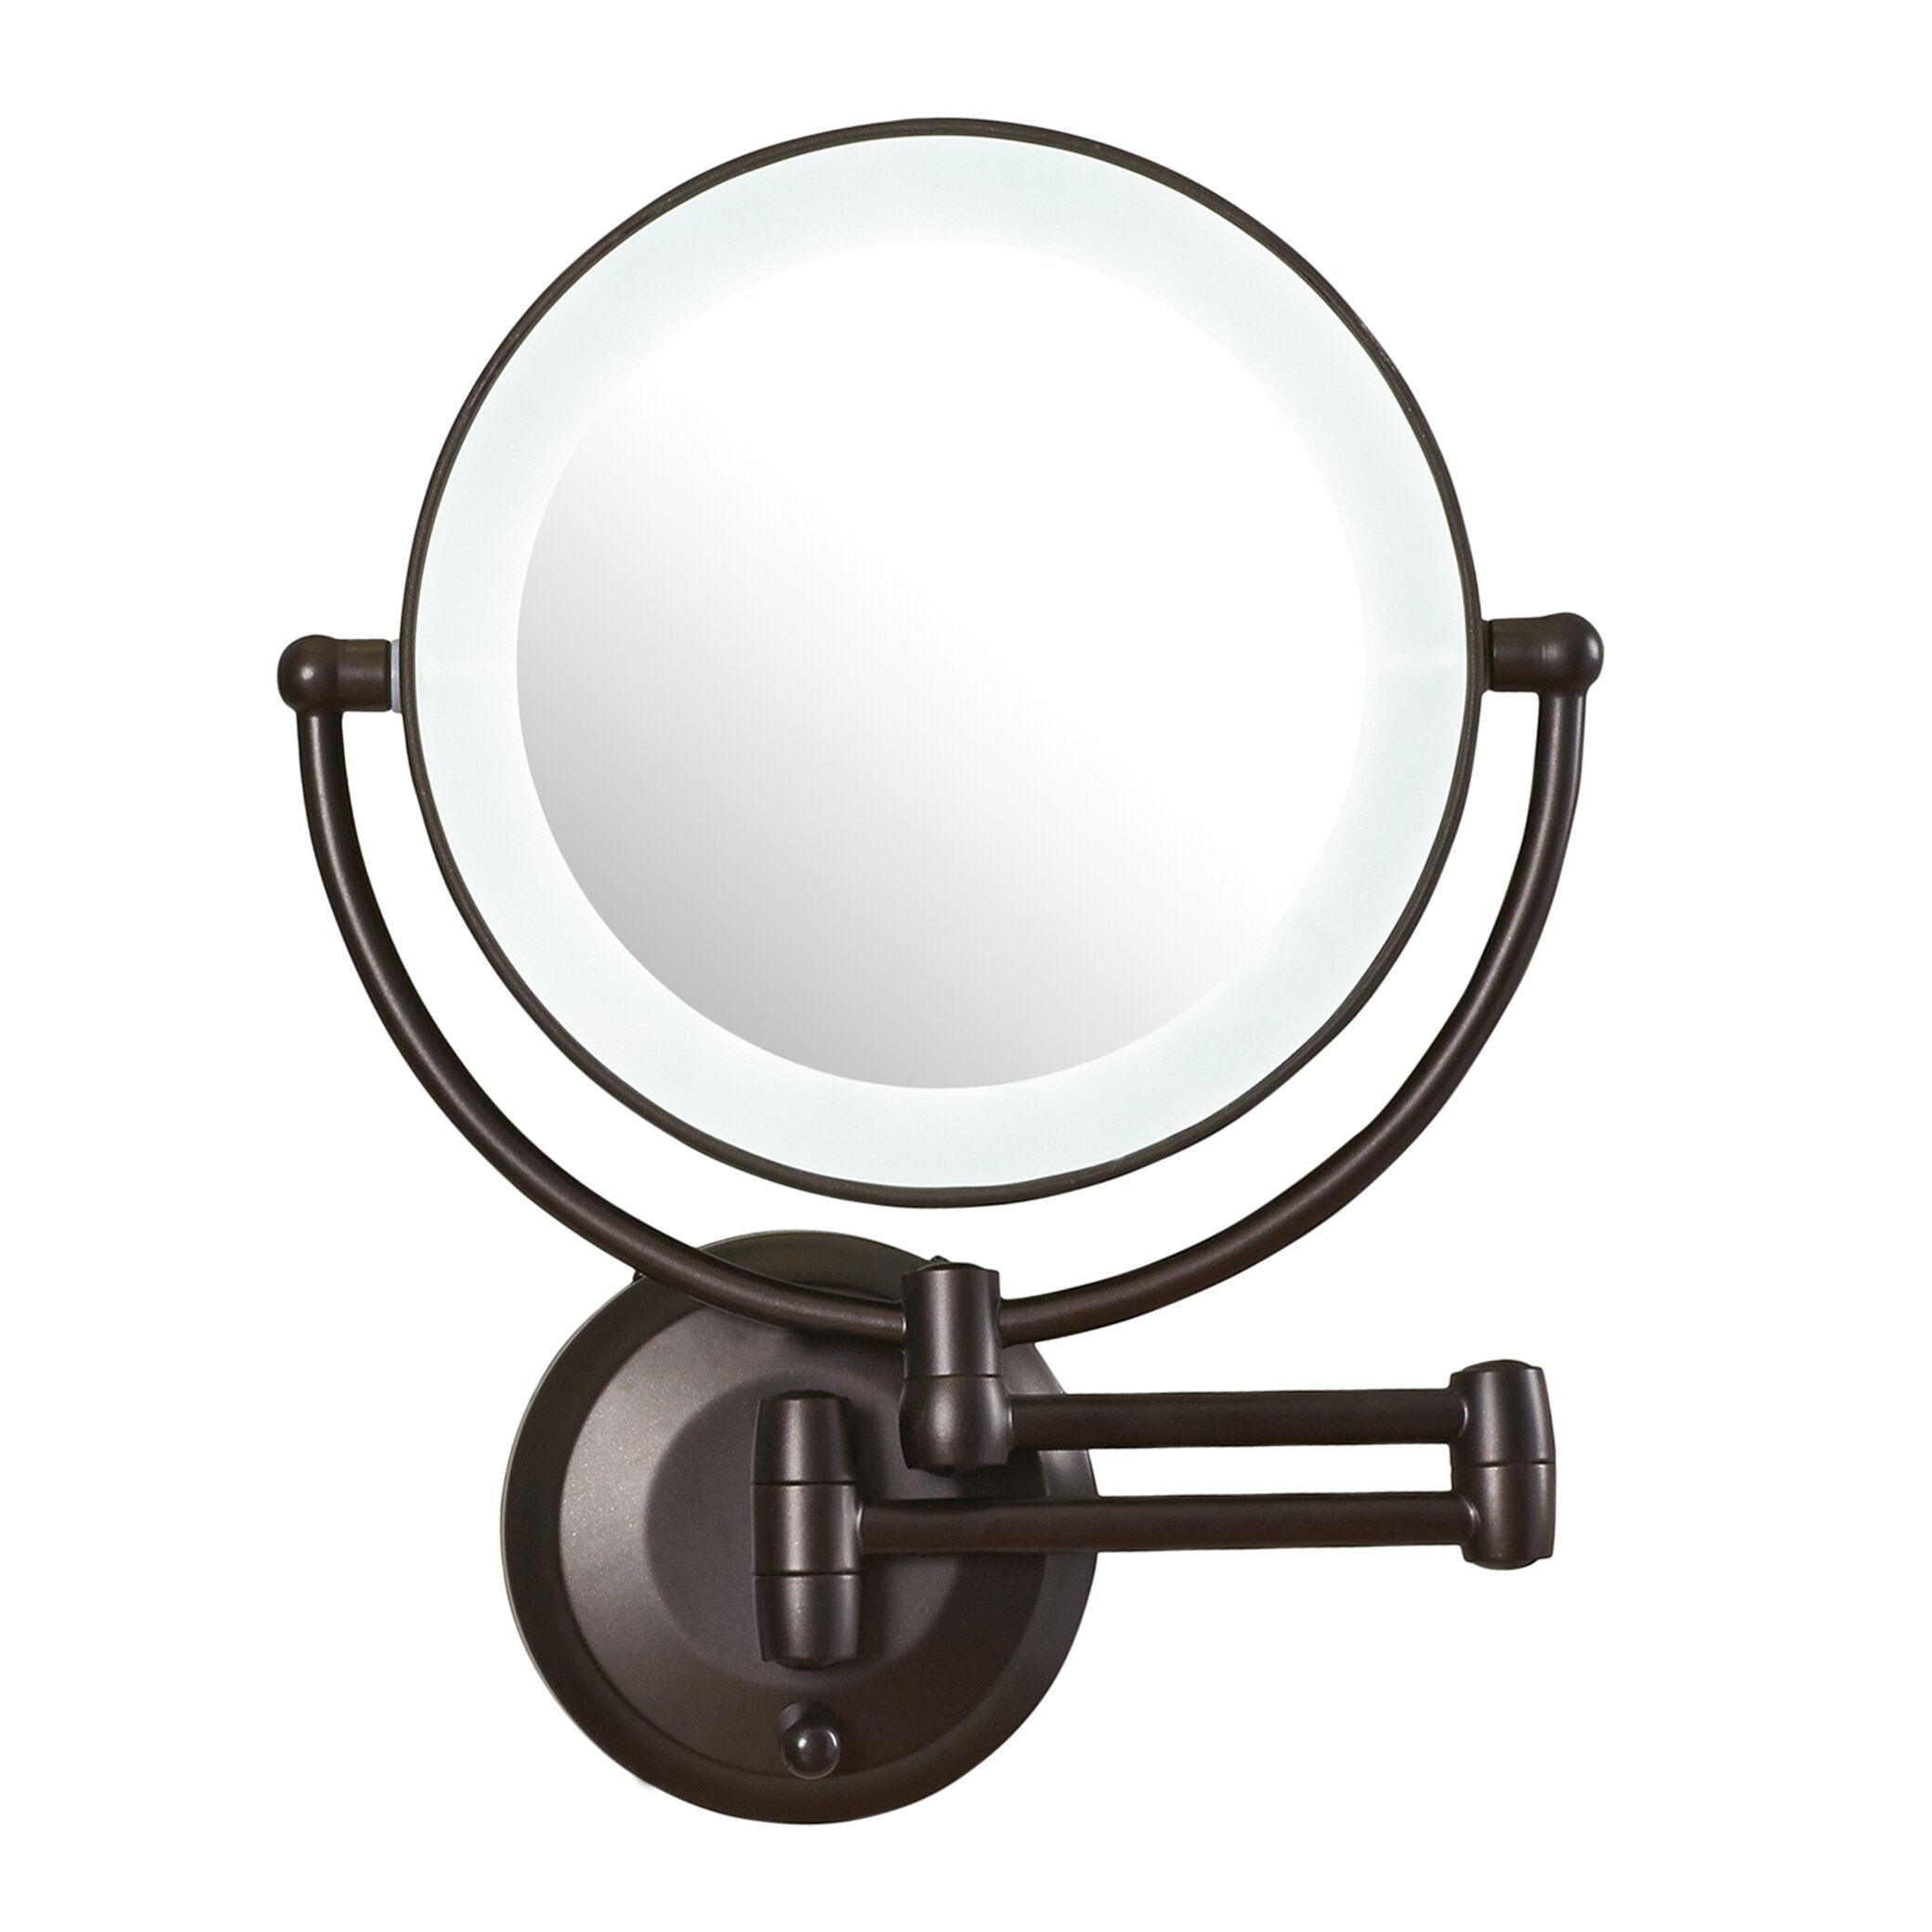 LED Lighted 1X/10X Magnification Wall Mount Mirror : Wayfair